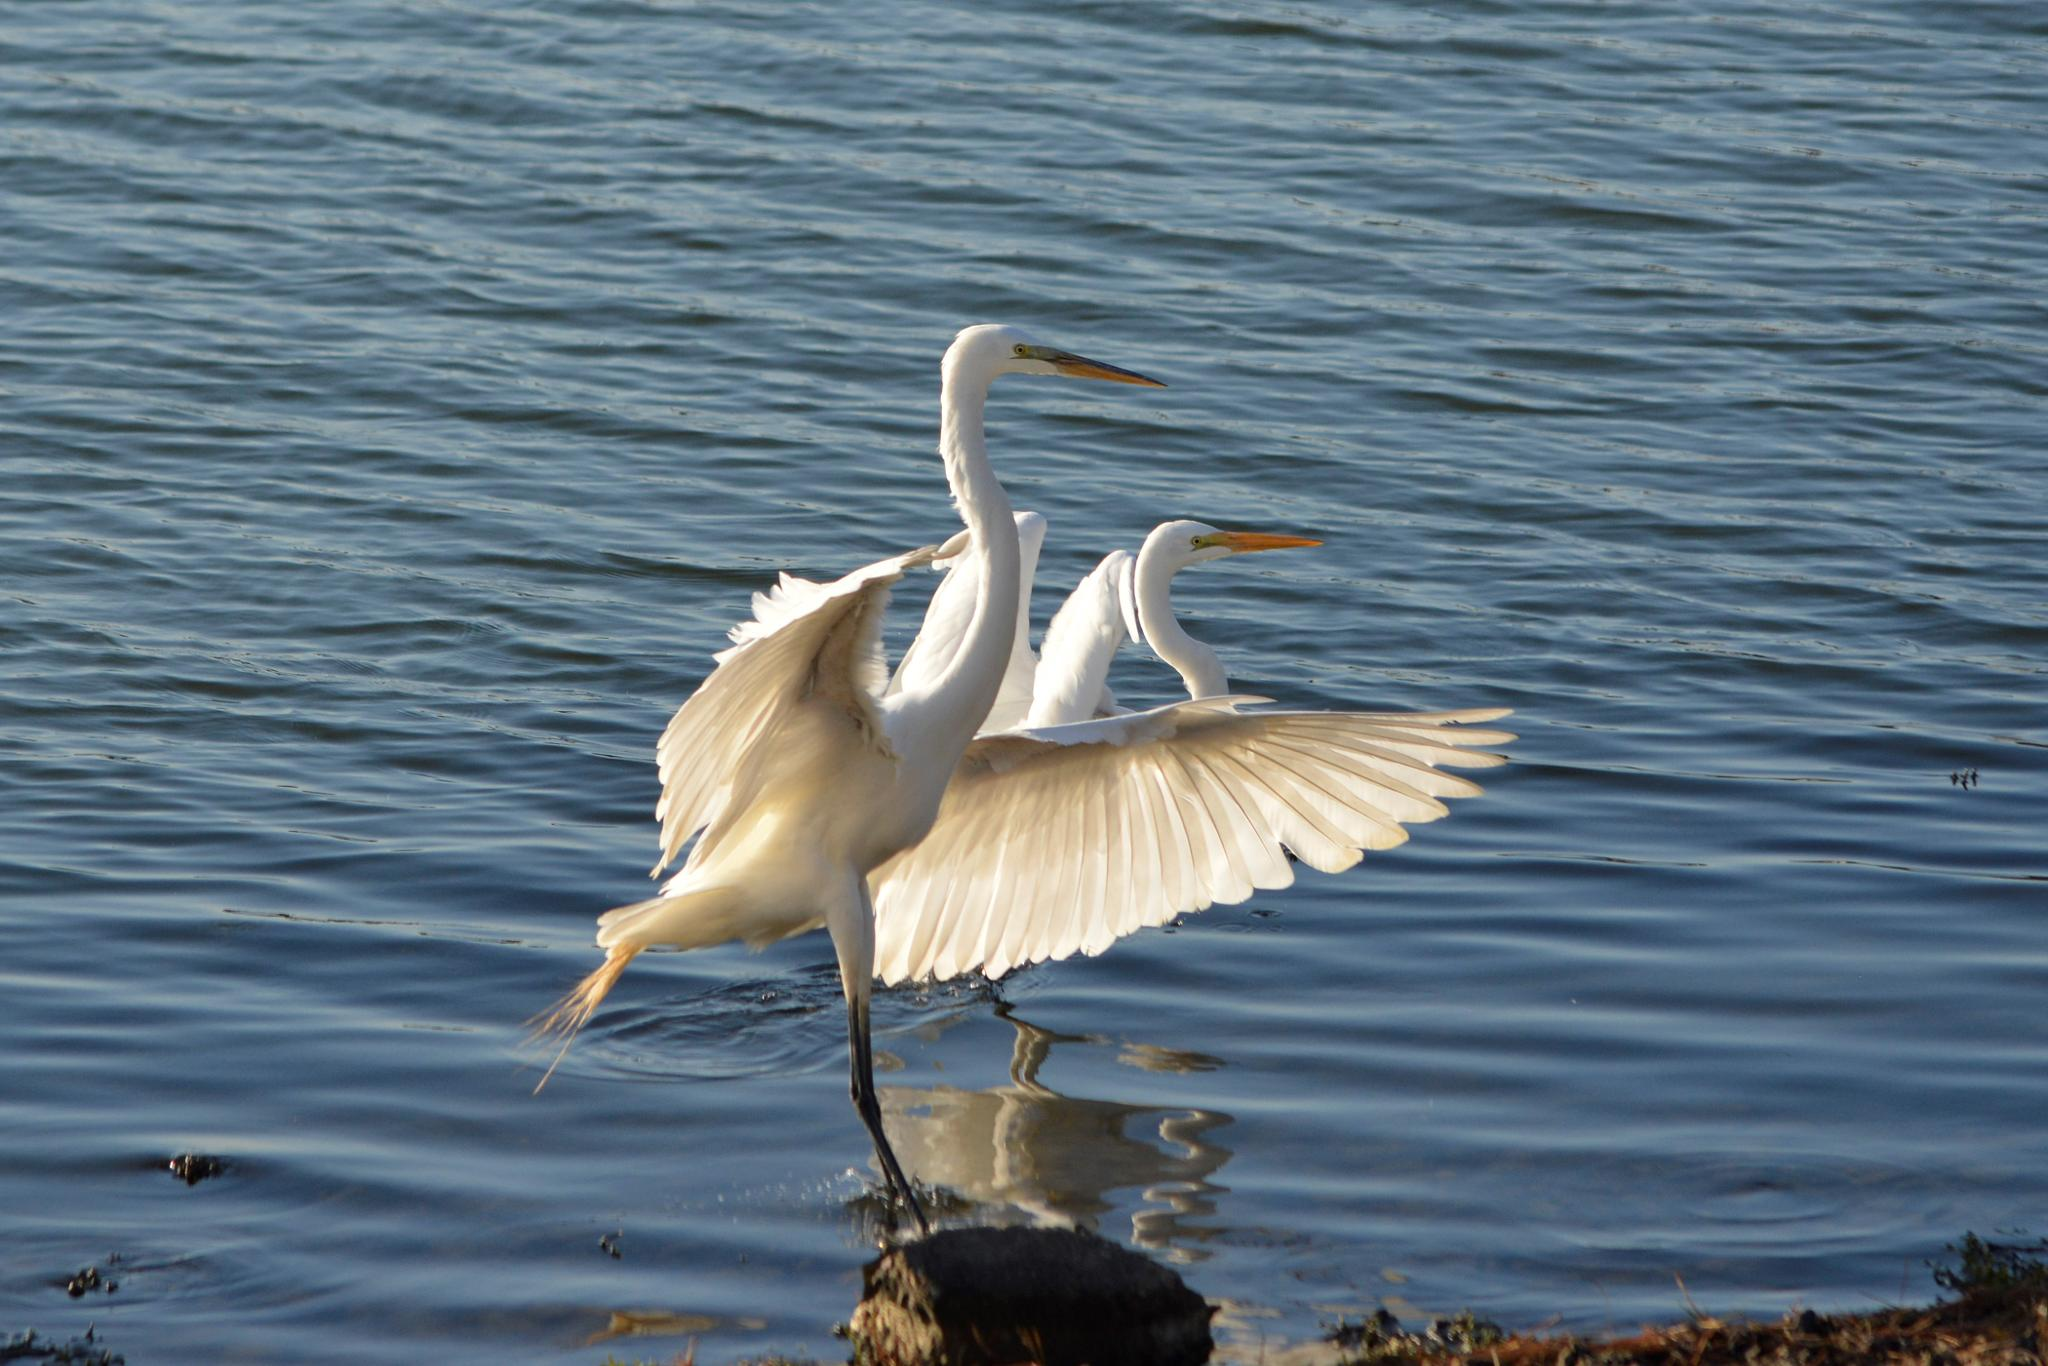 Pair of Egrets by Annie Molyneux